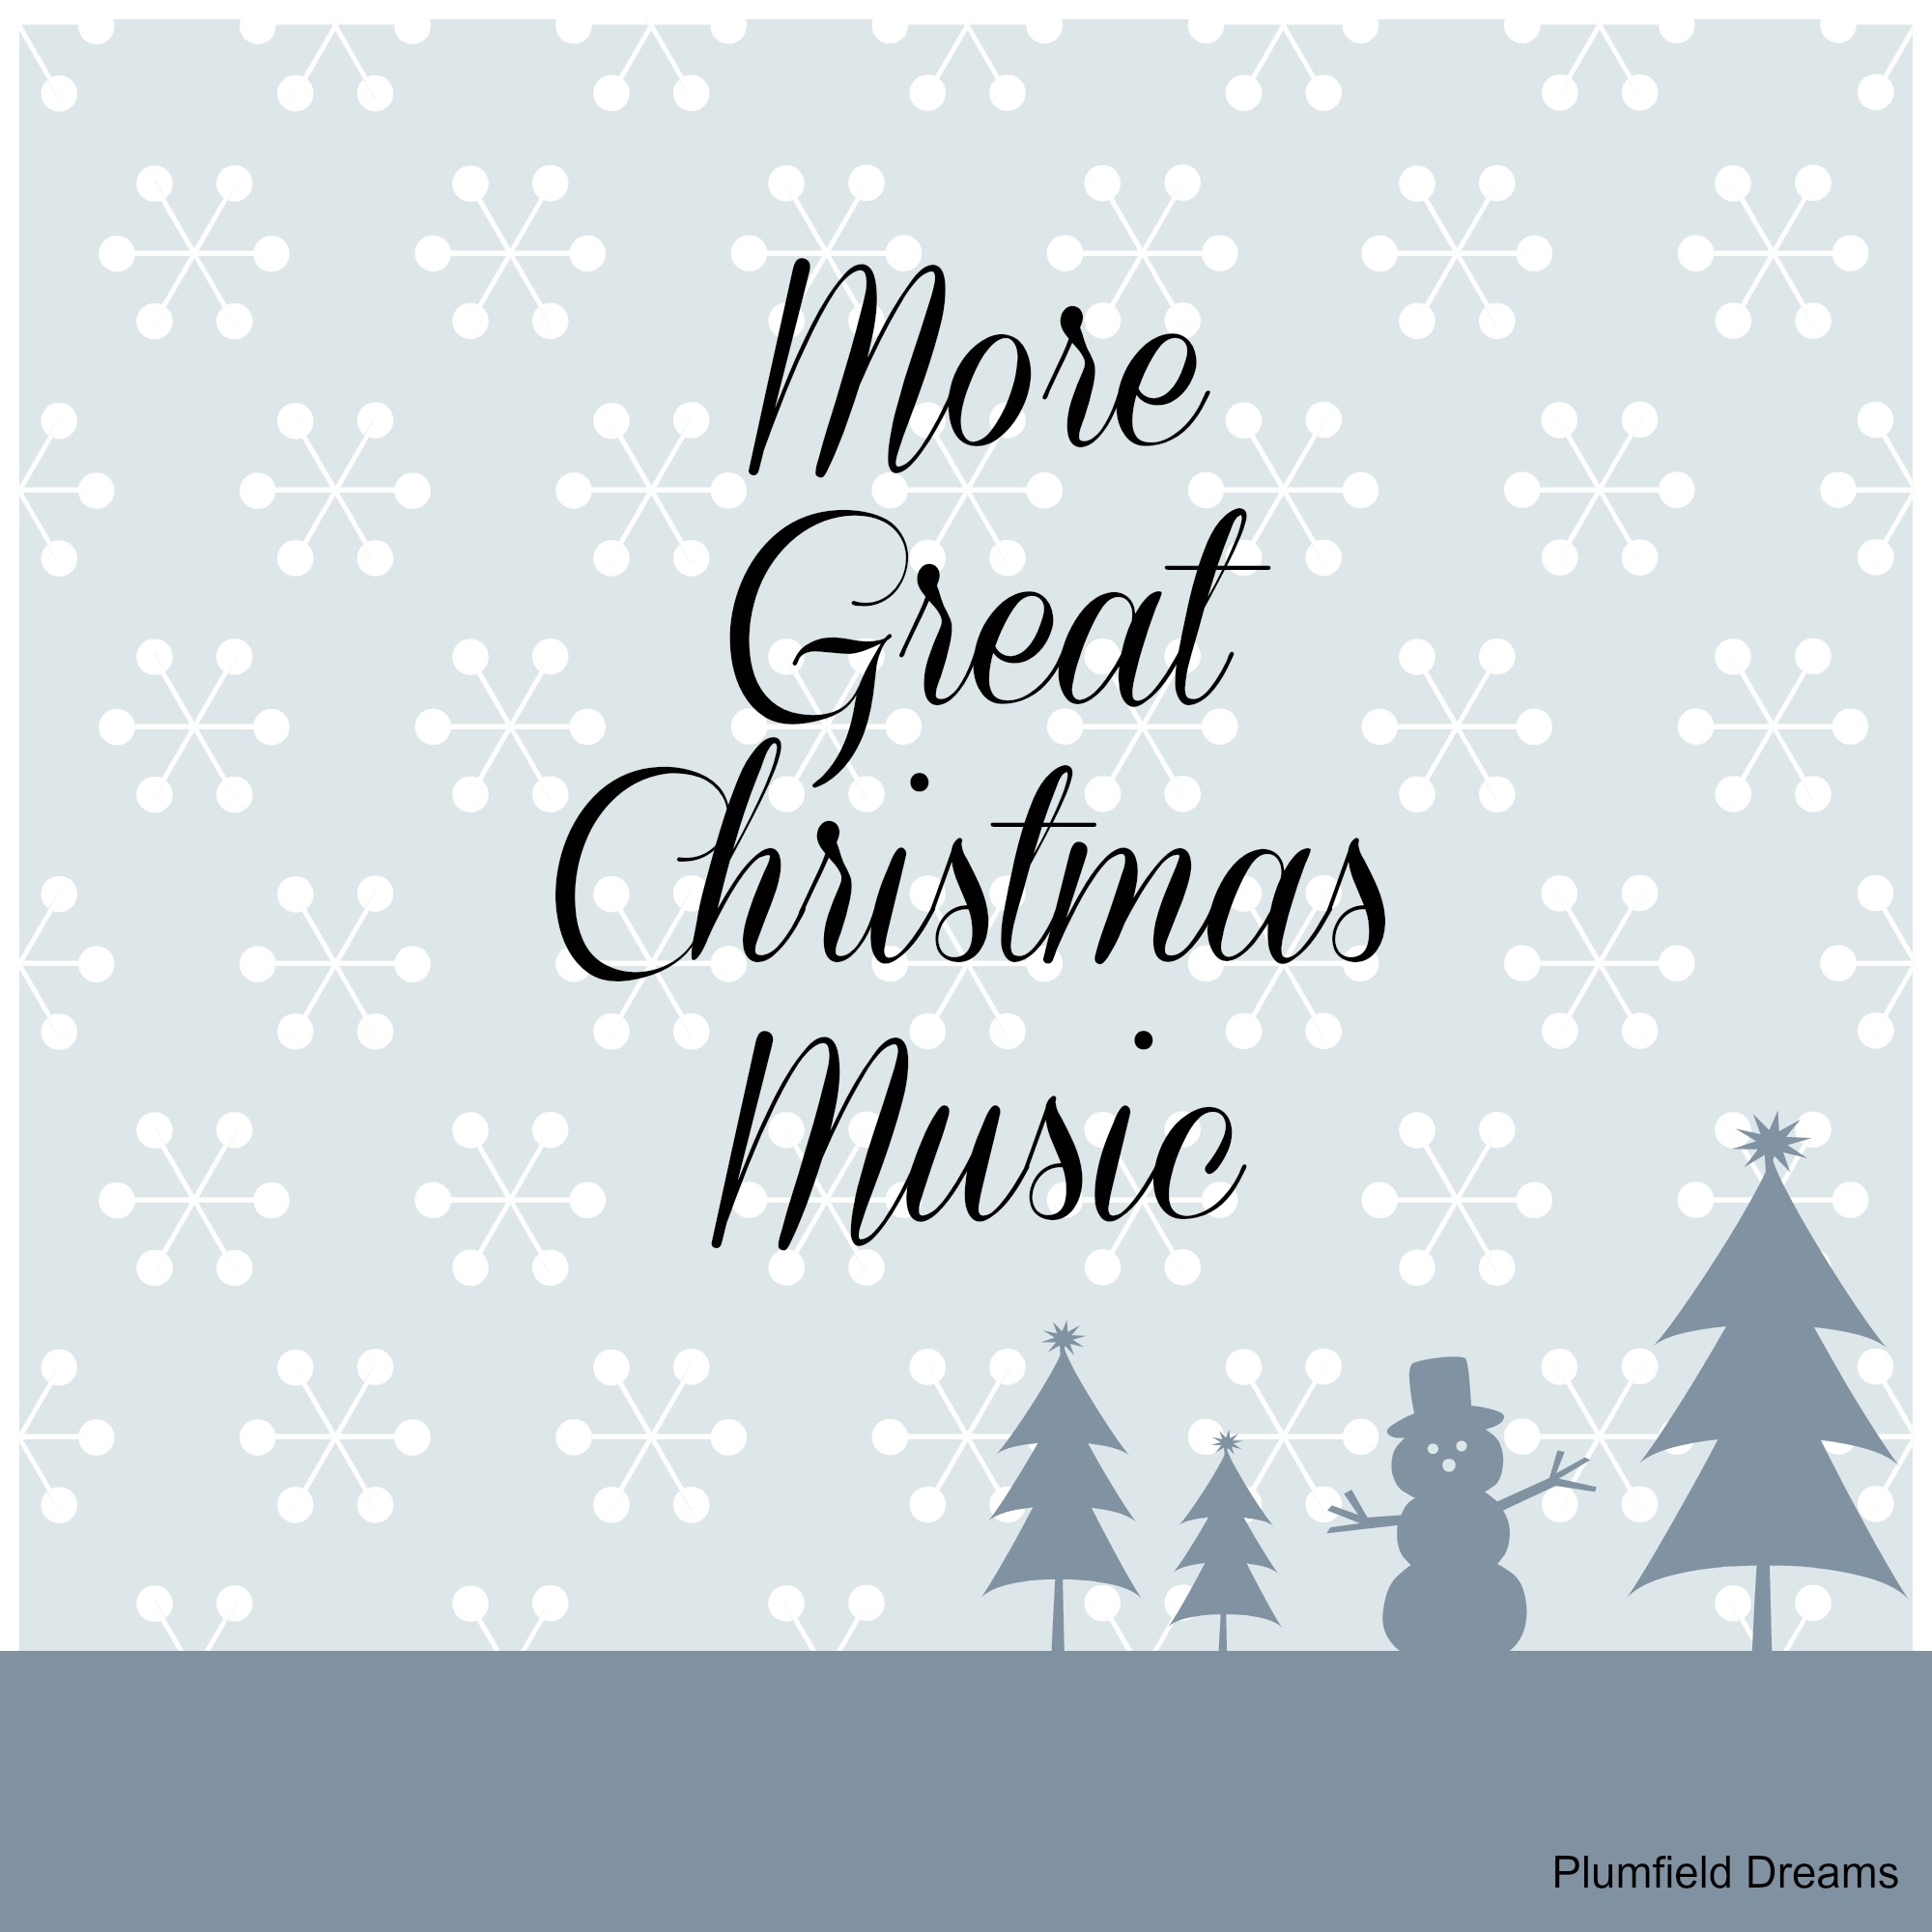 Plumfield Dreams ~ More Great Christmas Music